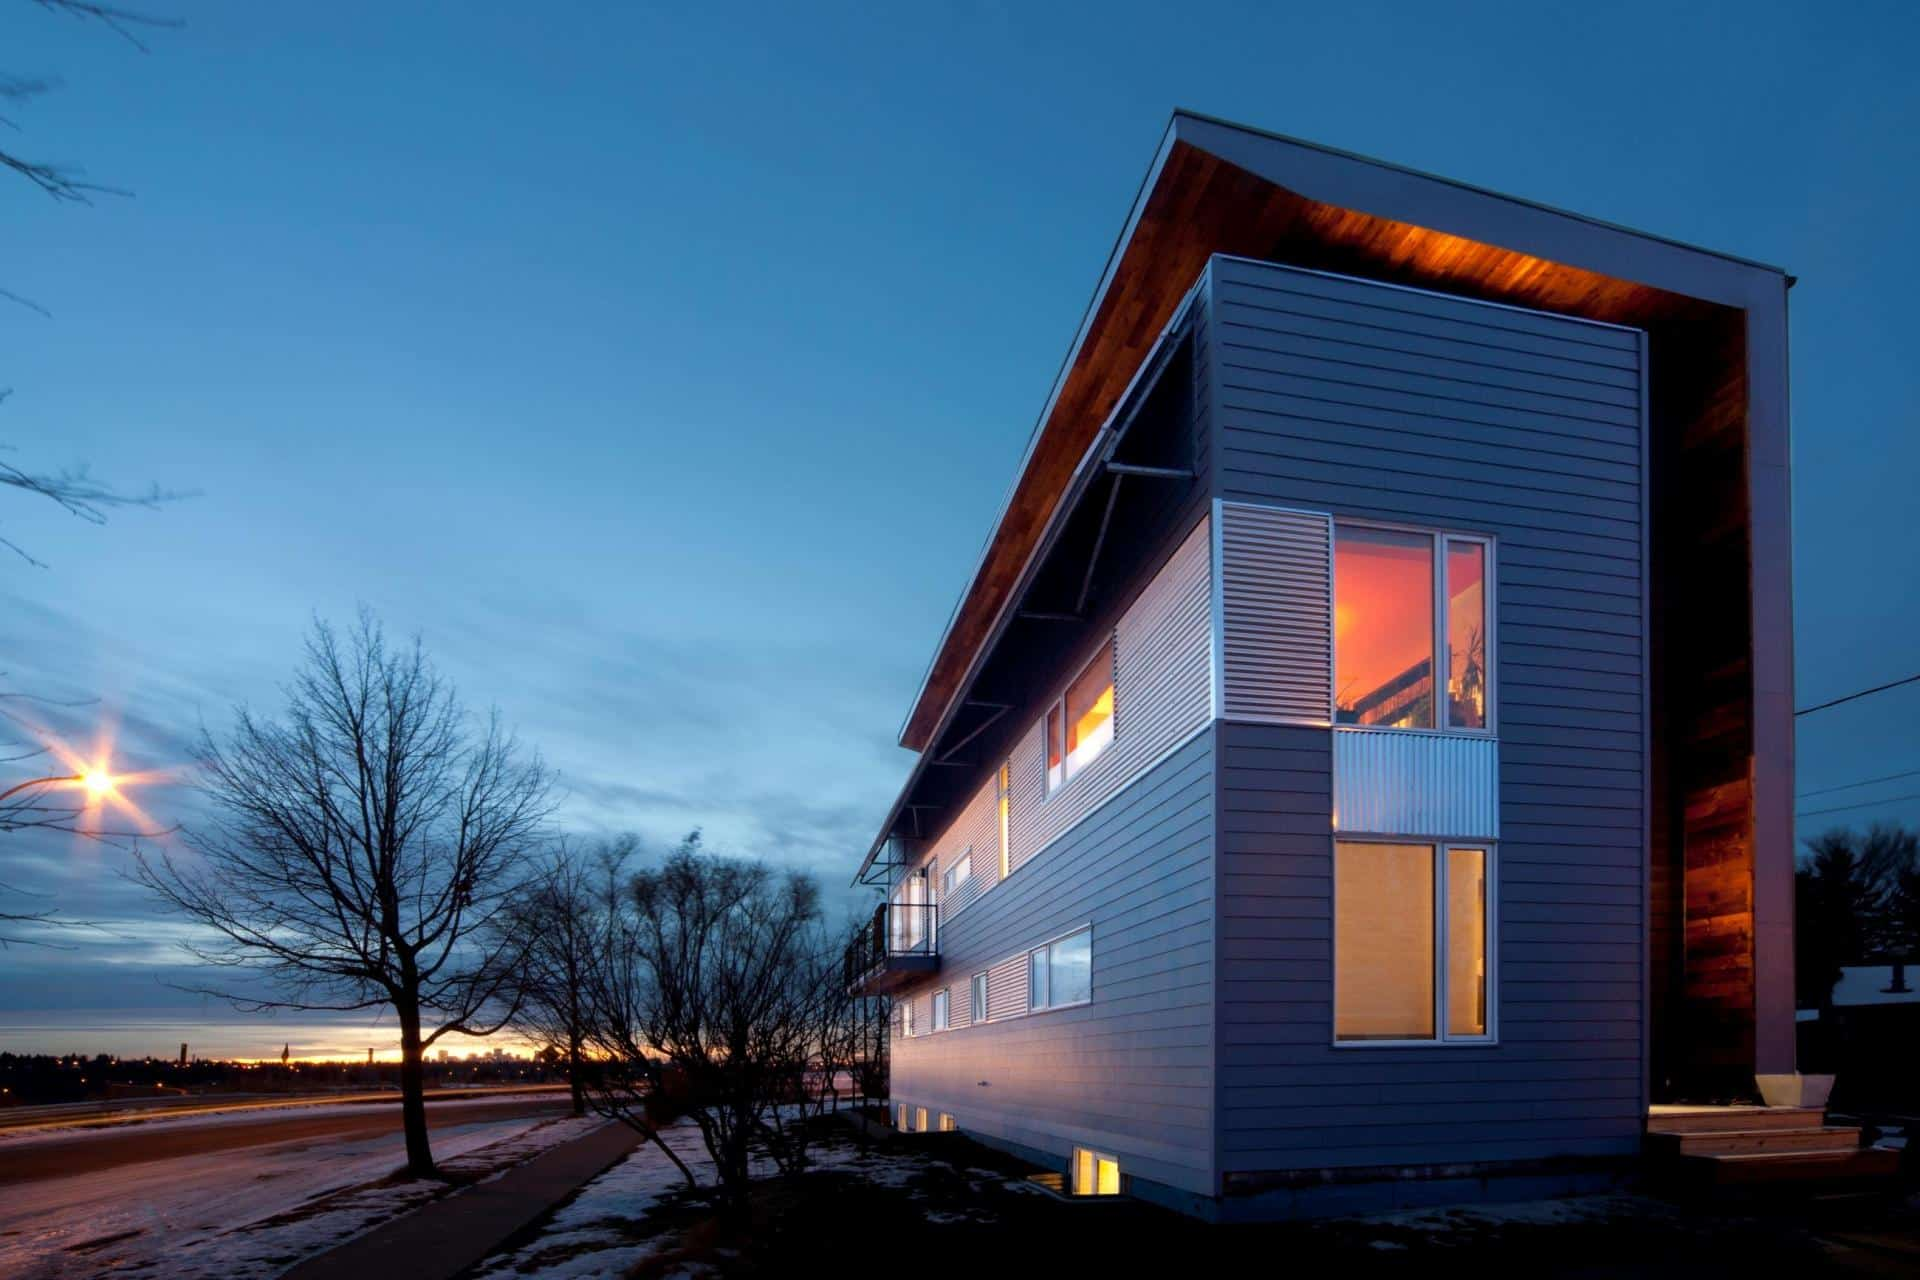 Low Energy Home Working Towards Net Zero Rating